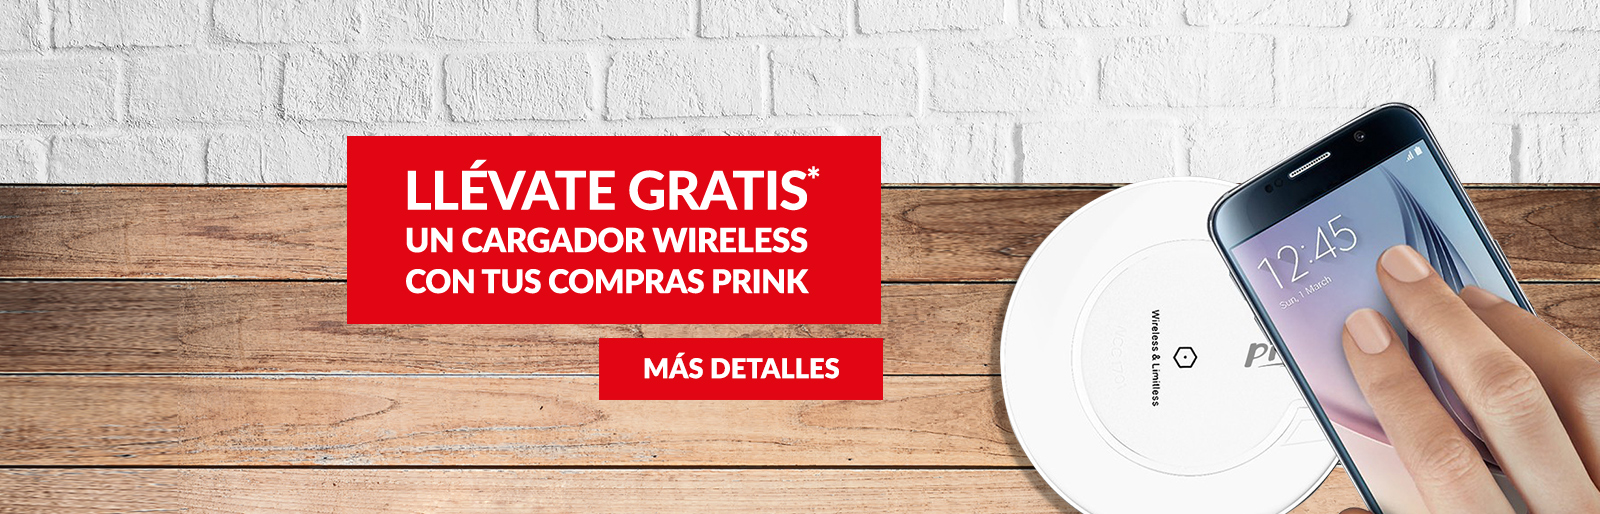 slider_cargador_wireless